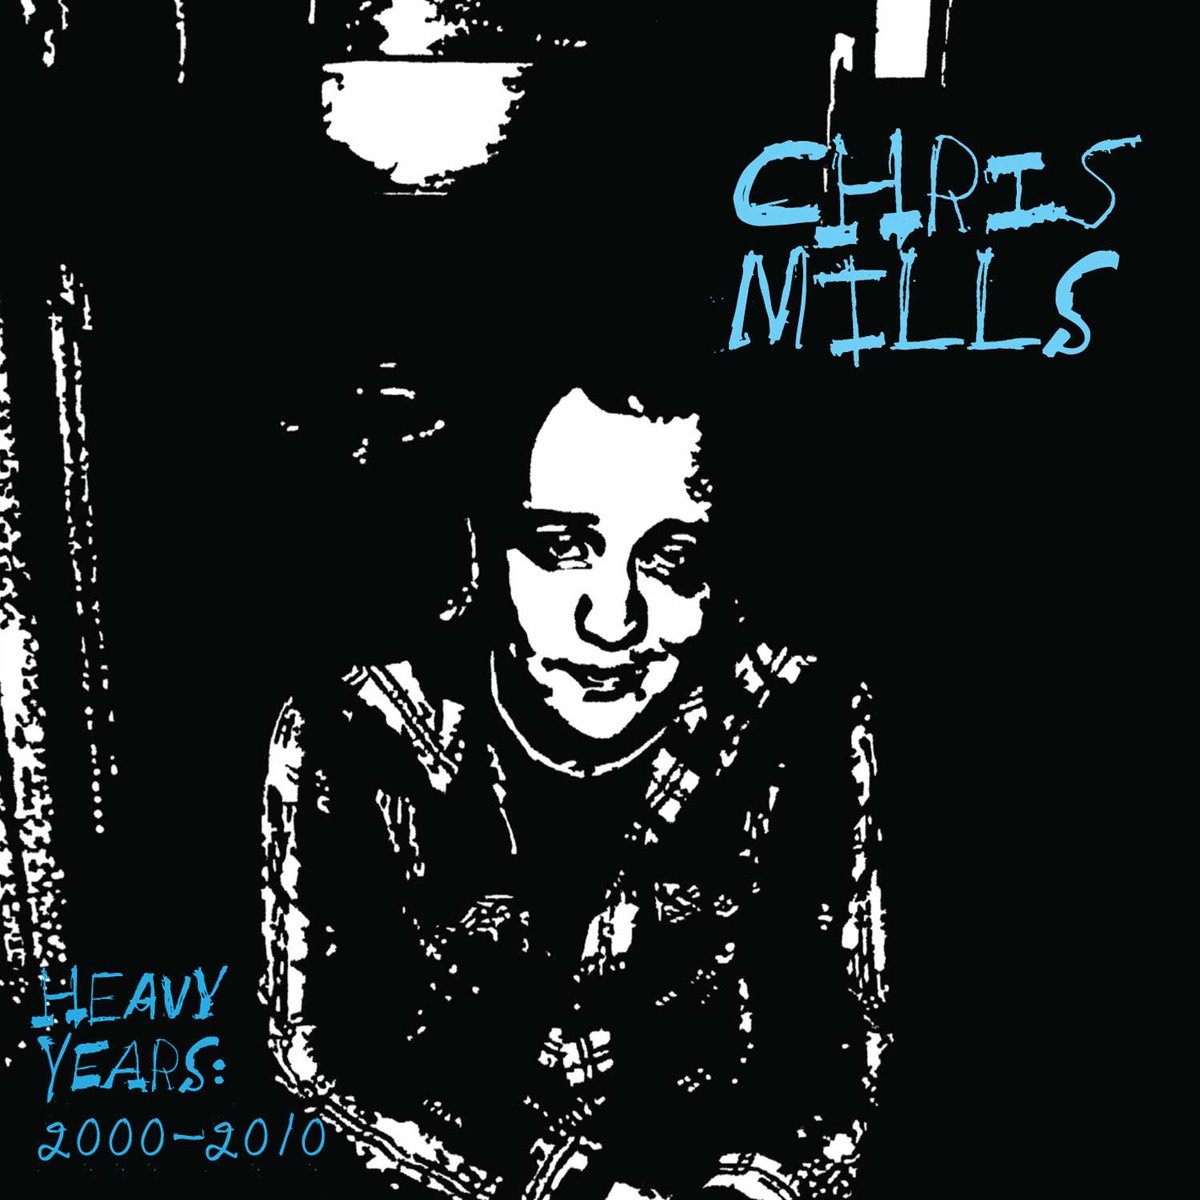 Chris Mills - Heavy Years (2000-2010)